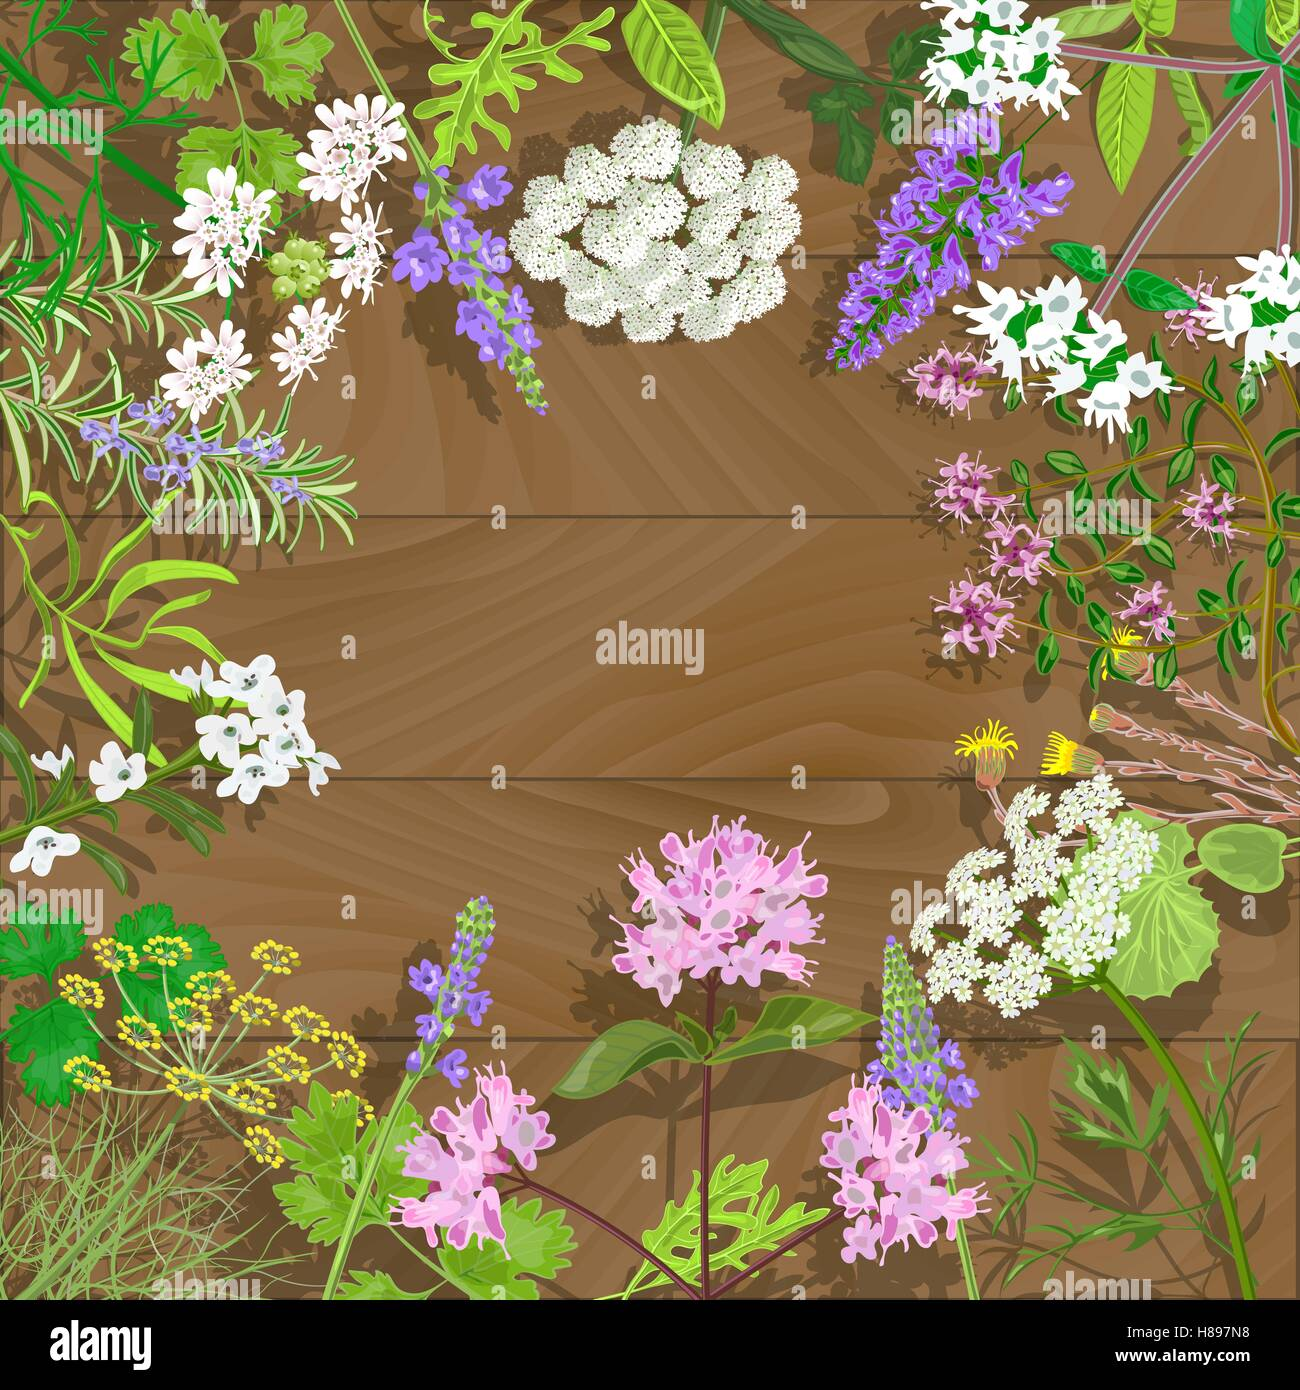 Circle of flowering herbs on wooden background.Salvia, angelica, oregano, rosemary, savory, verbena, anise, fennel, - Stock Vector